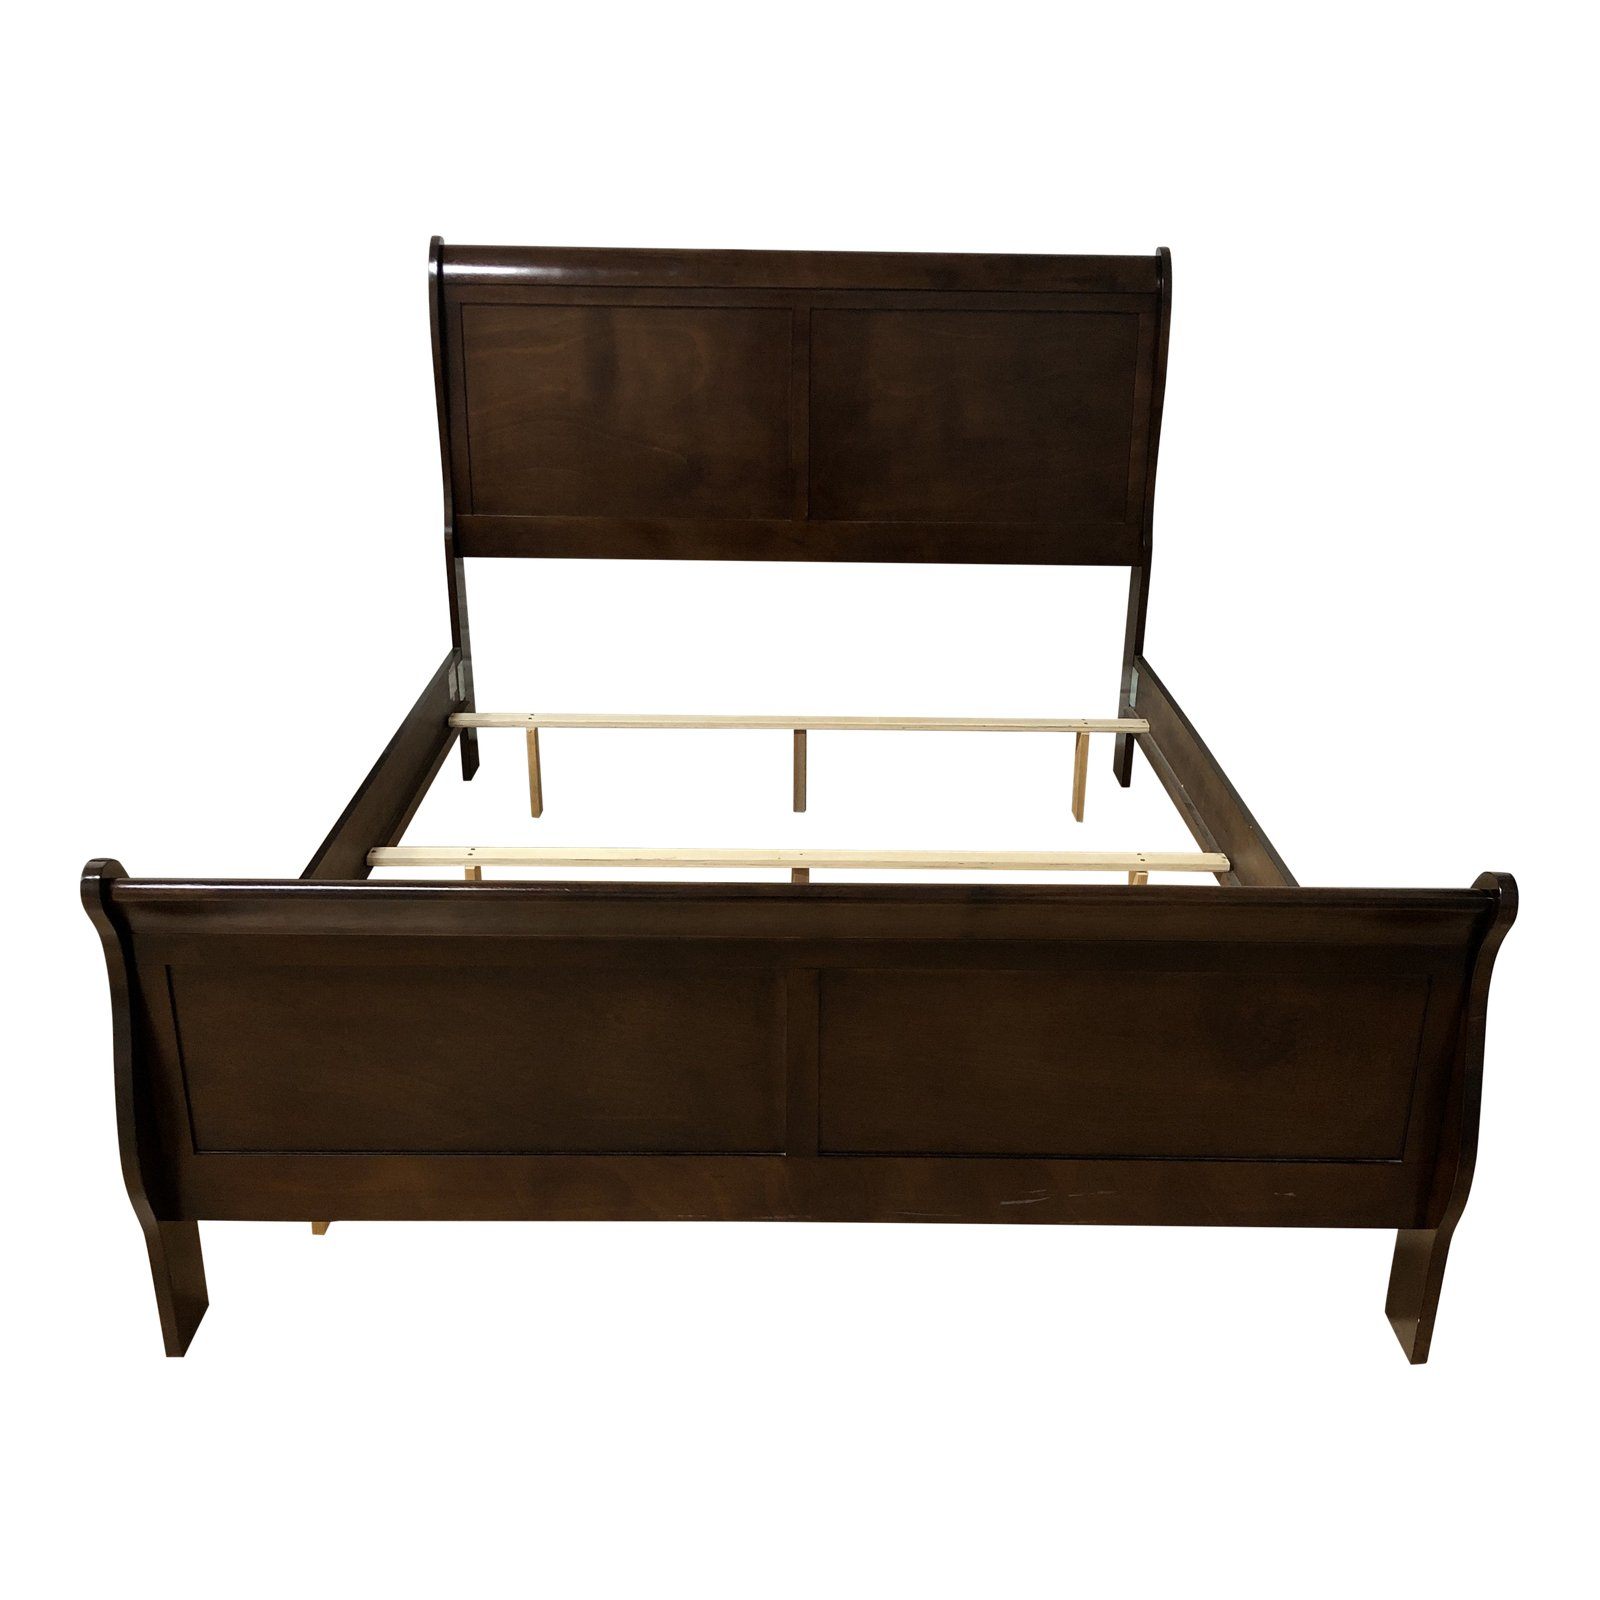 Queen Size Wood Sleigh Bed Frame   Design Plus Gallery